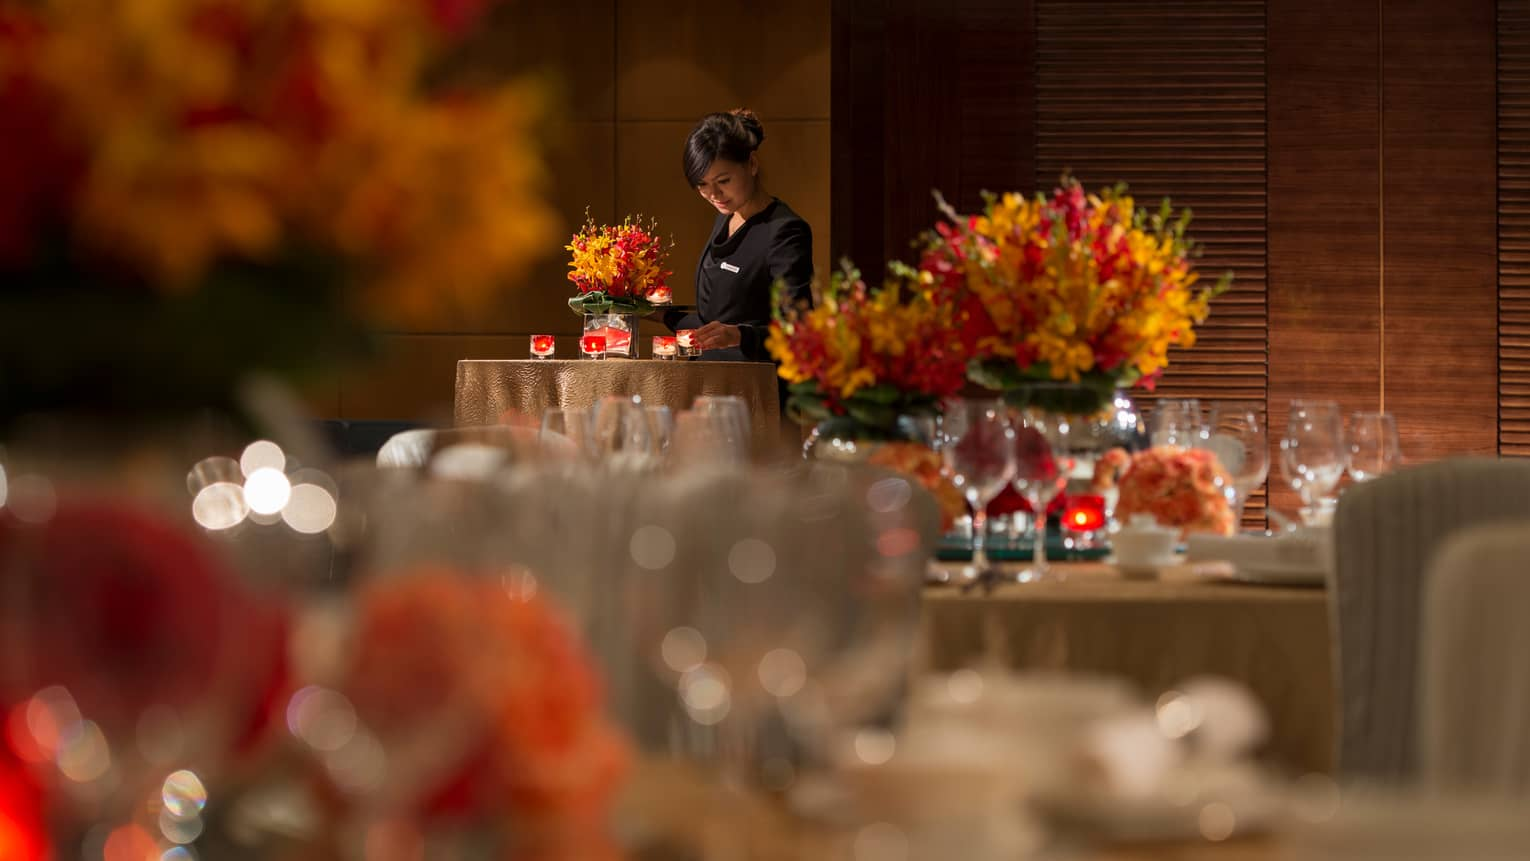 Hotel server in uniform places candles on table with orange flowers, linens, behind dining tables